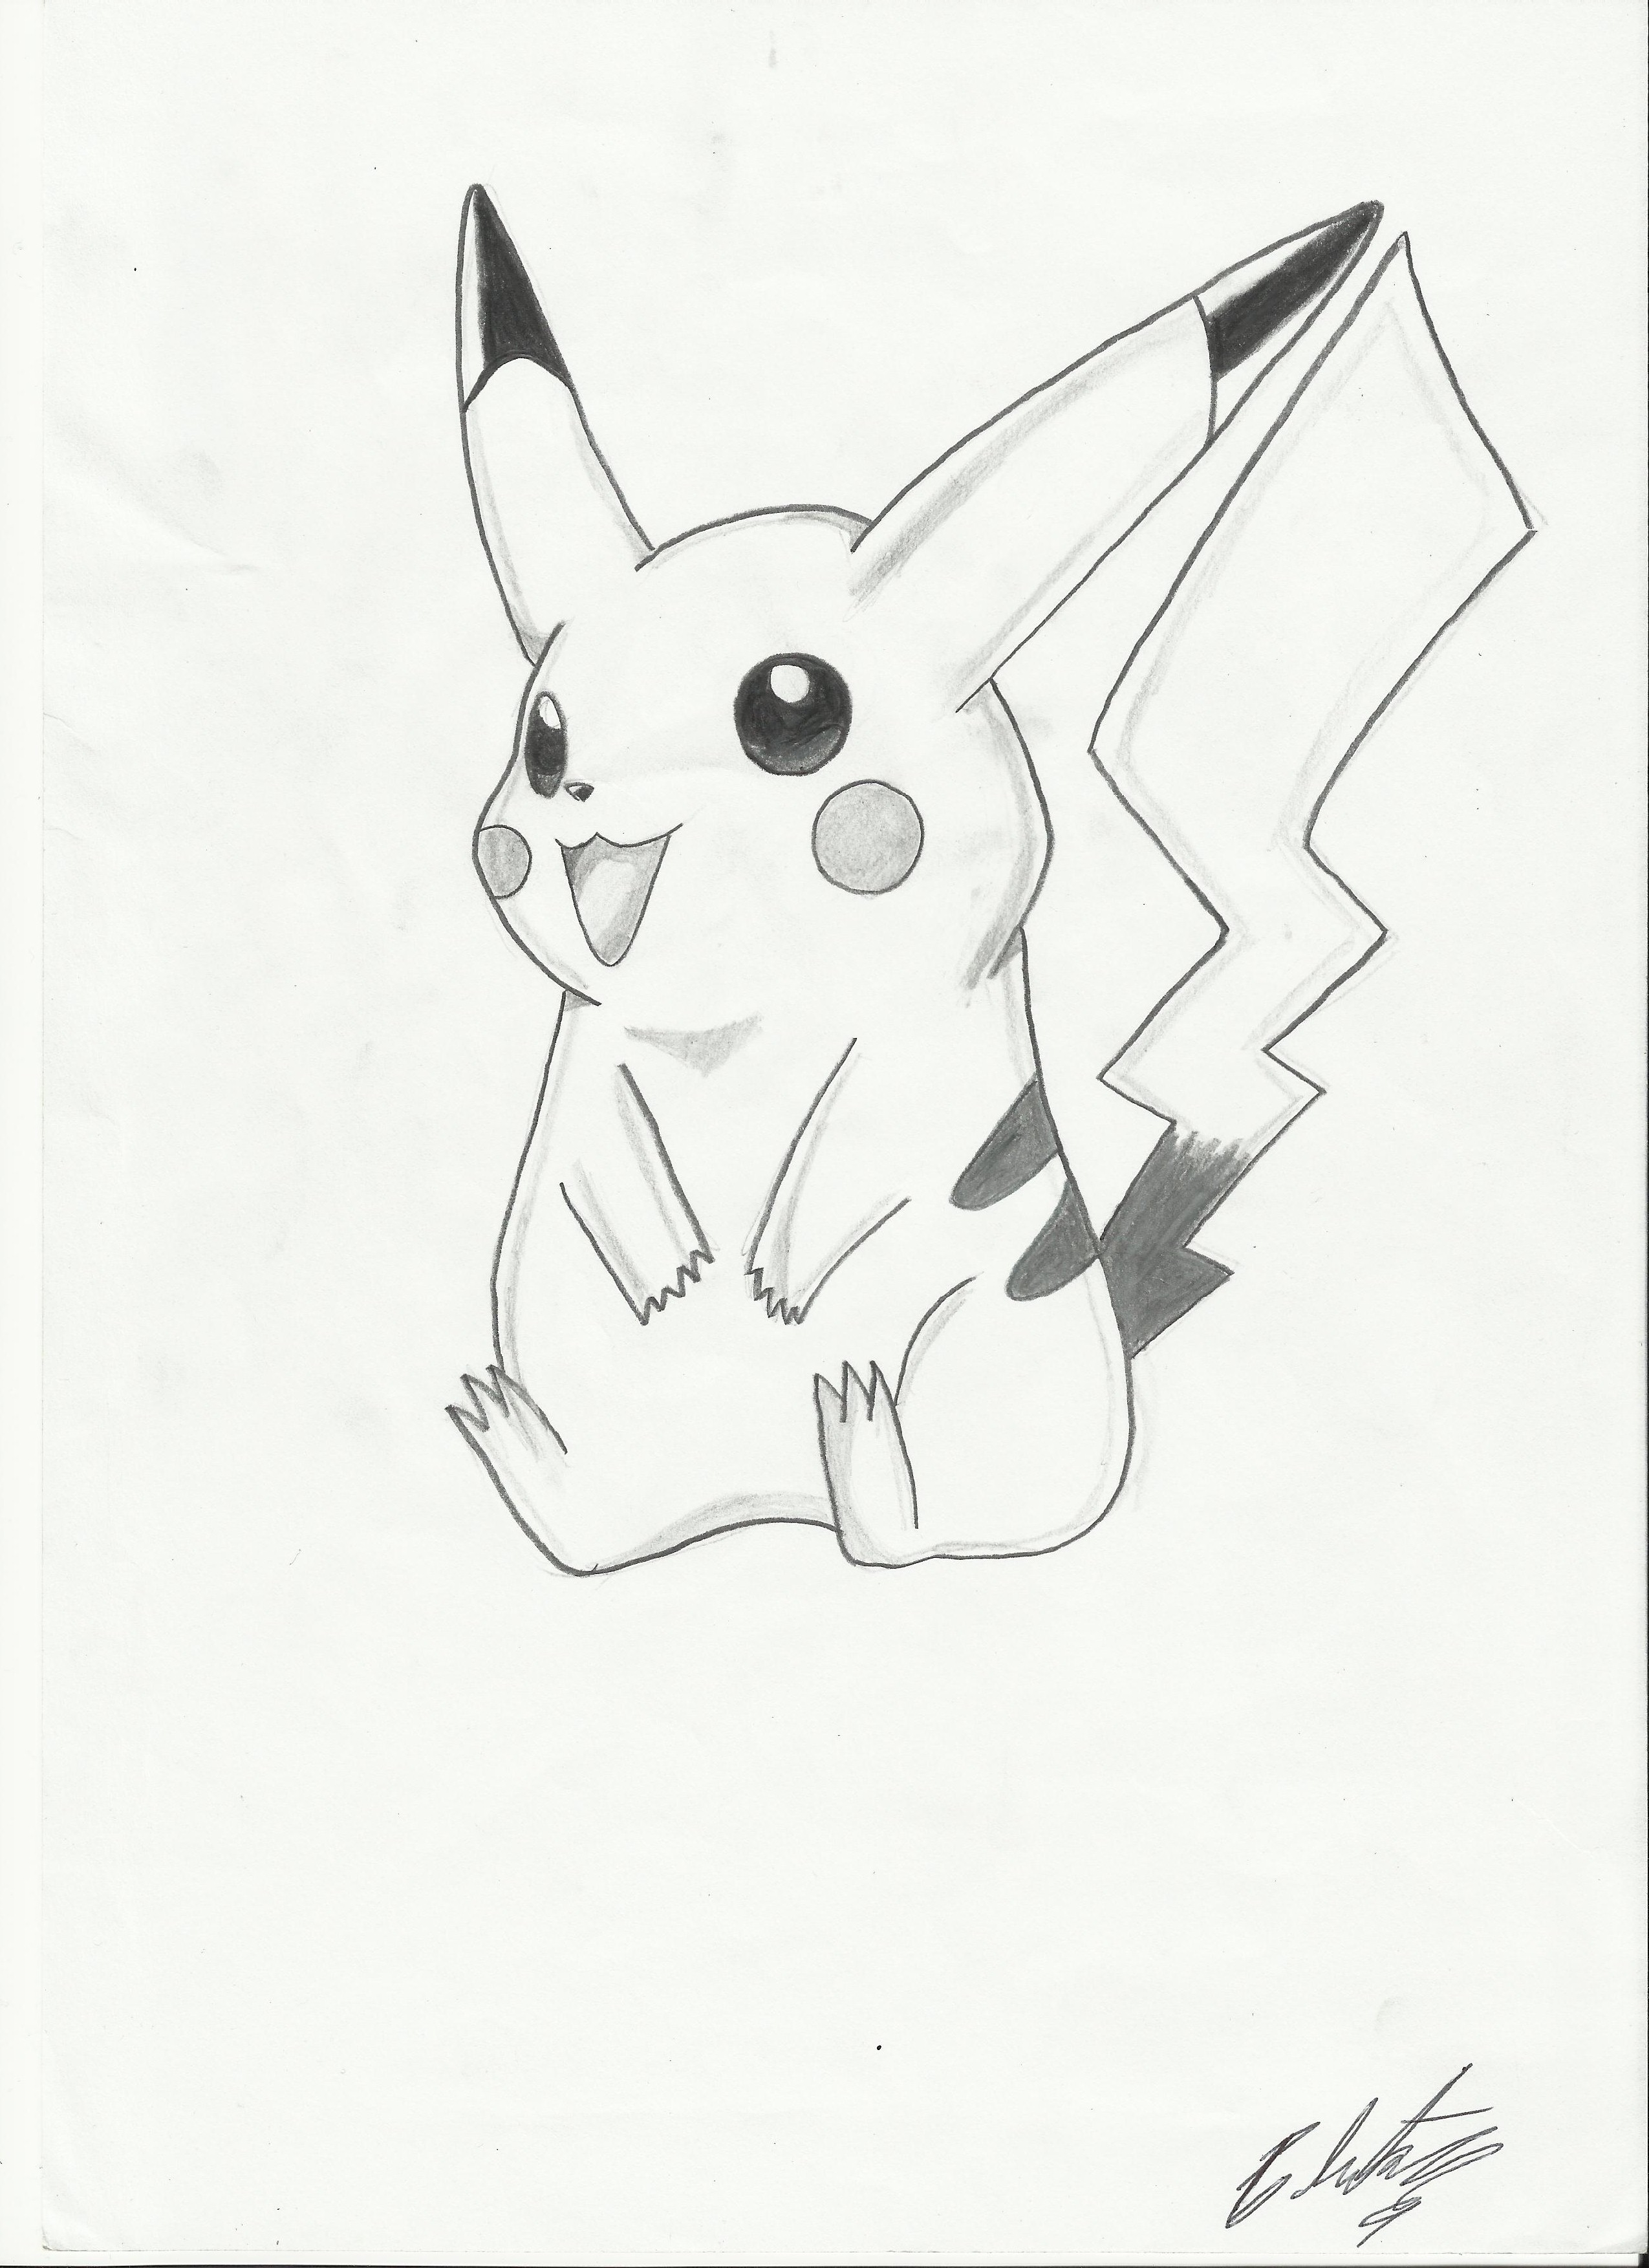 pikachu drawing by krizeii on deviantart